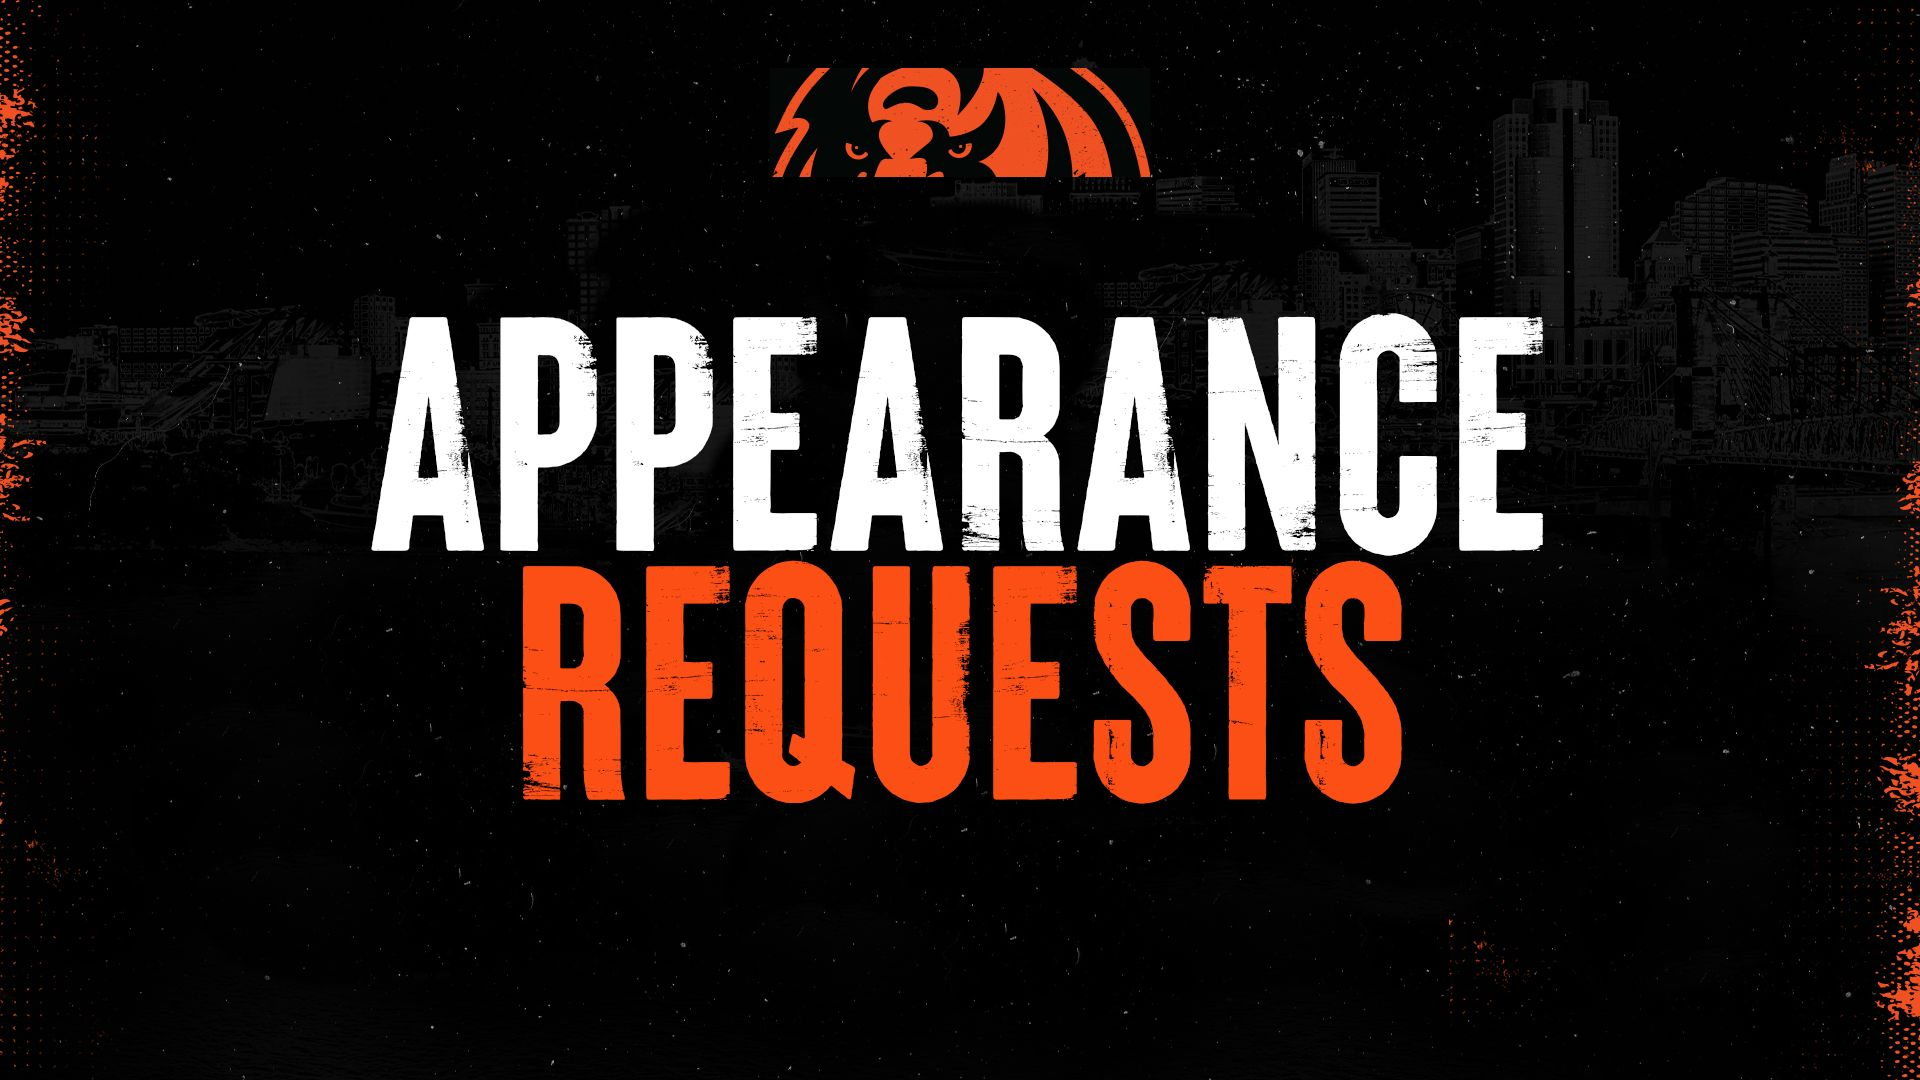 Appearance Requests